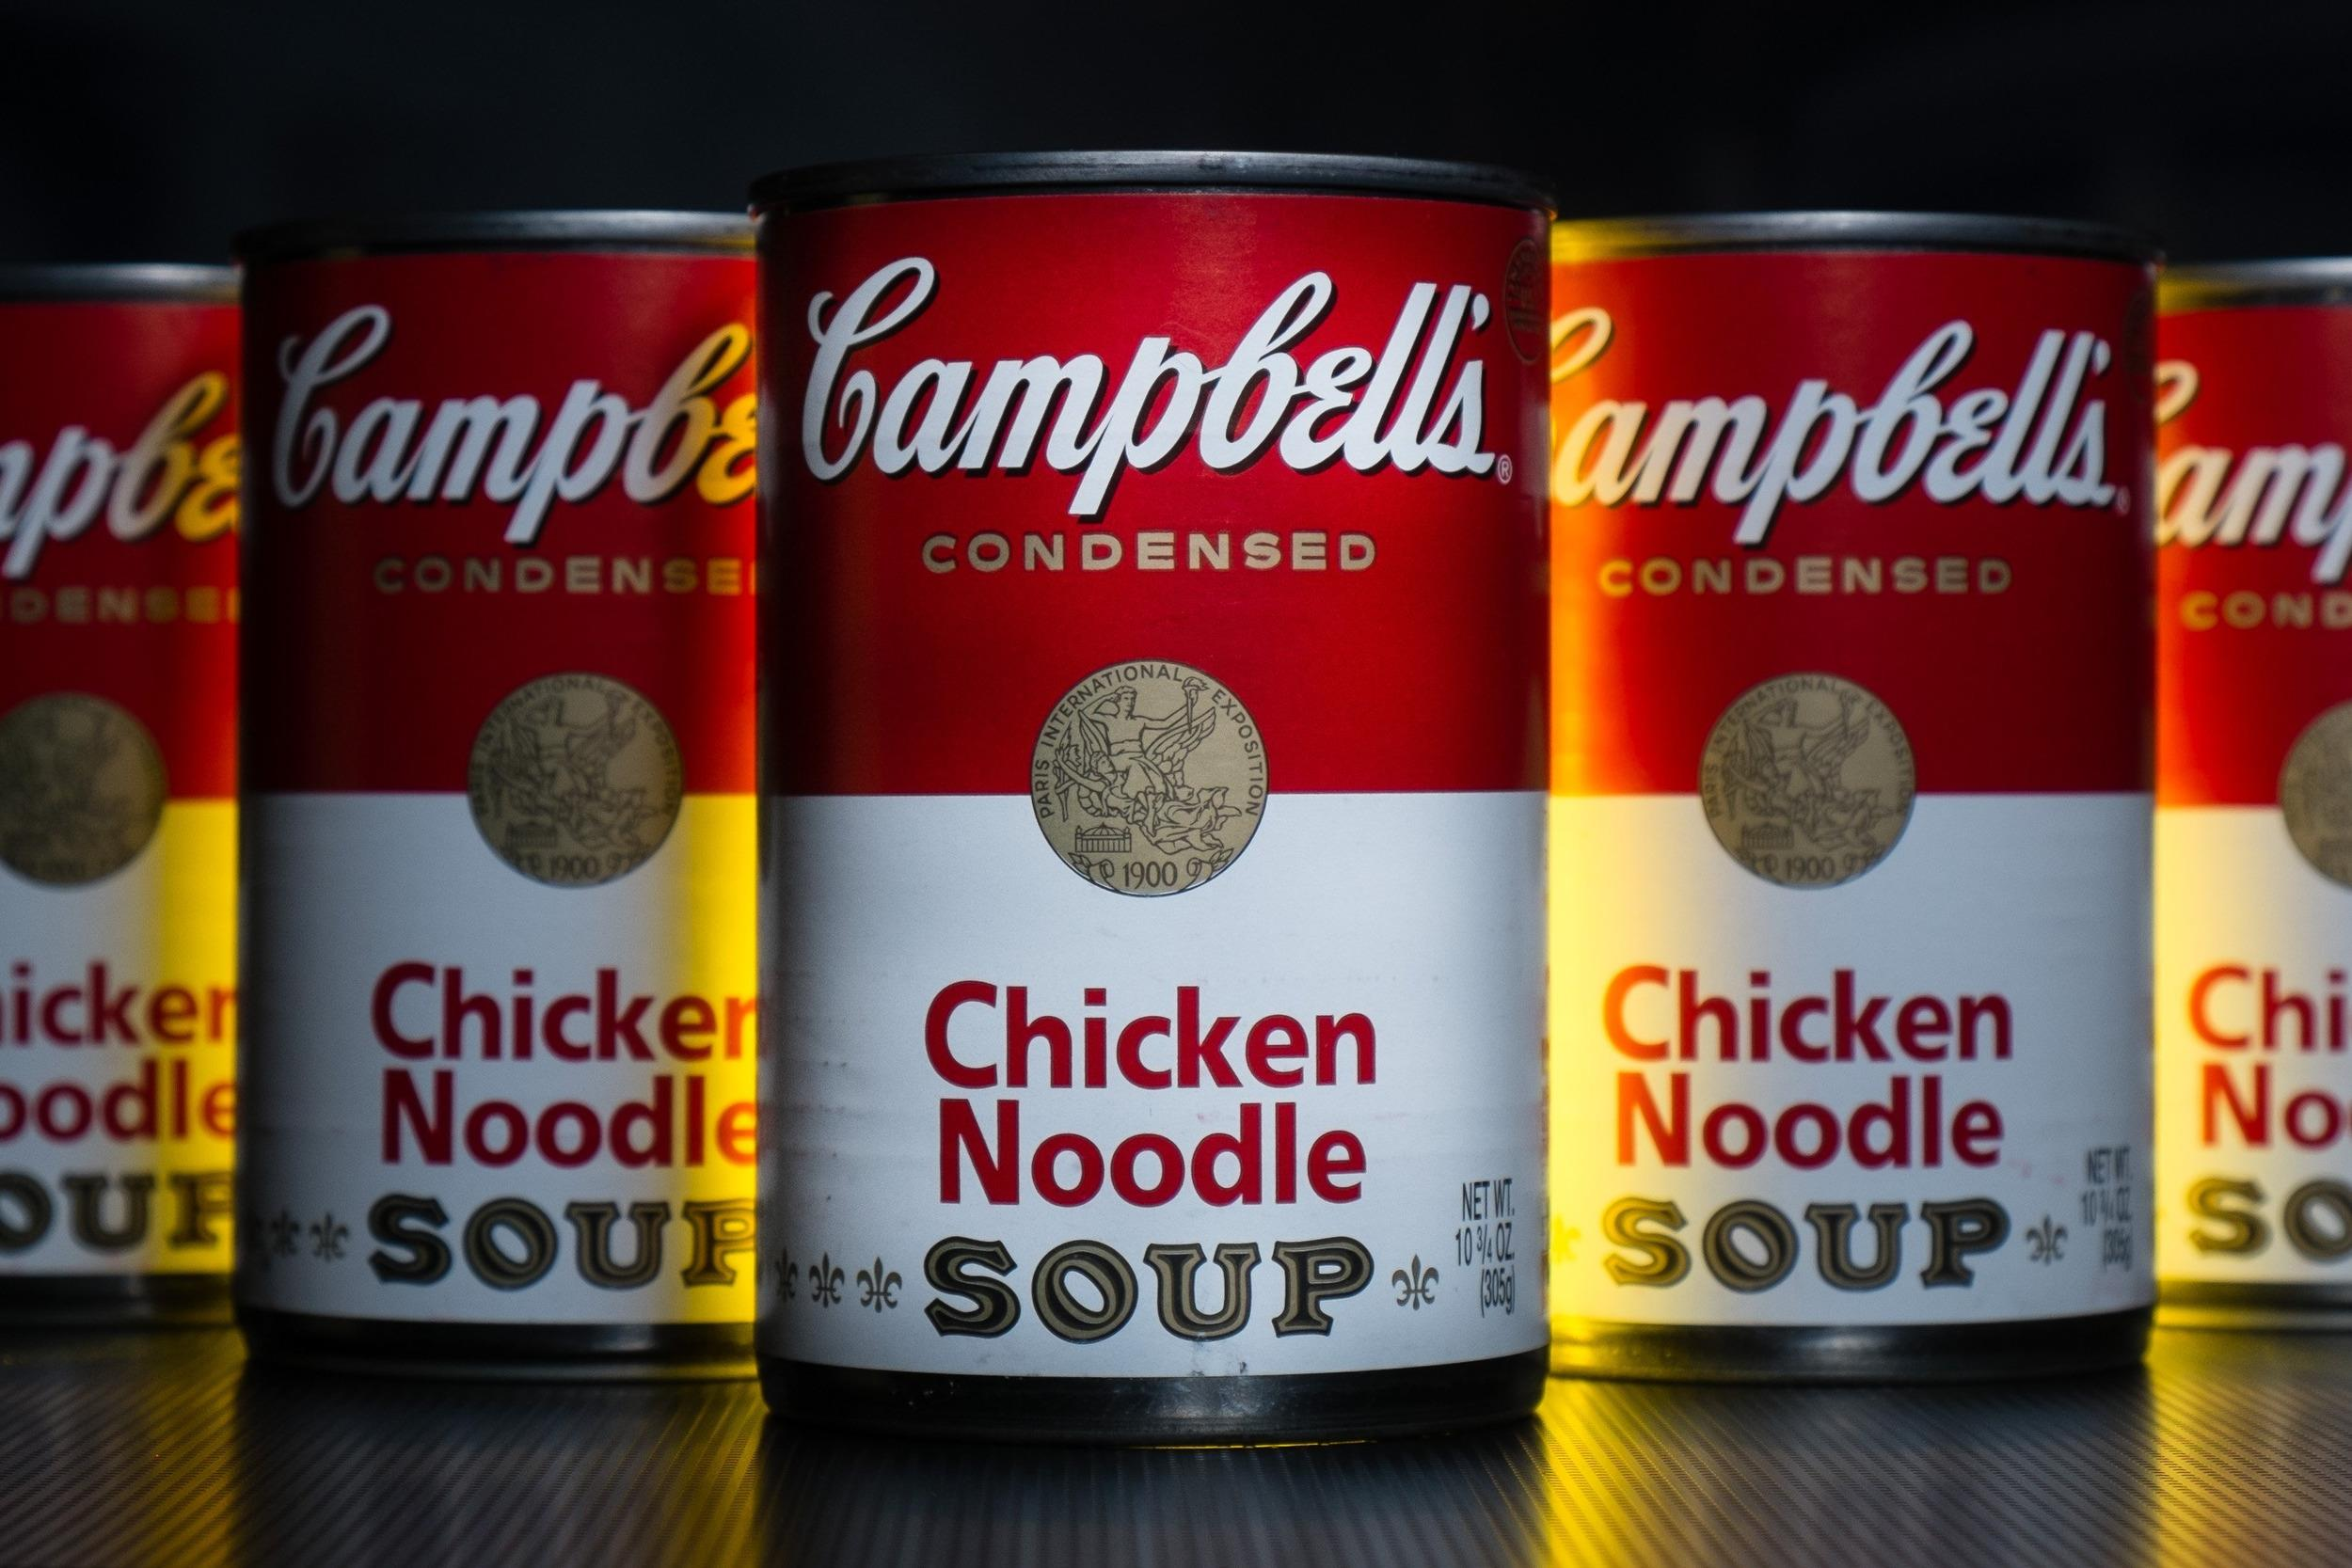 Image: Campbell Soup cans